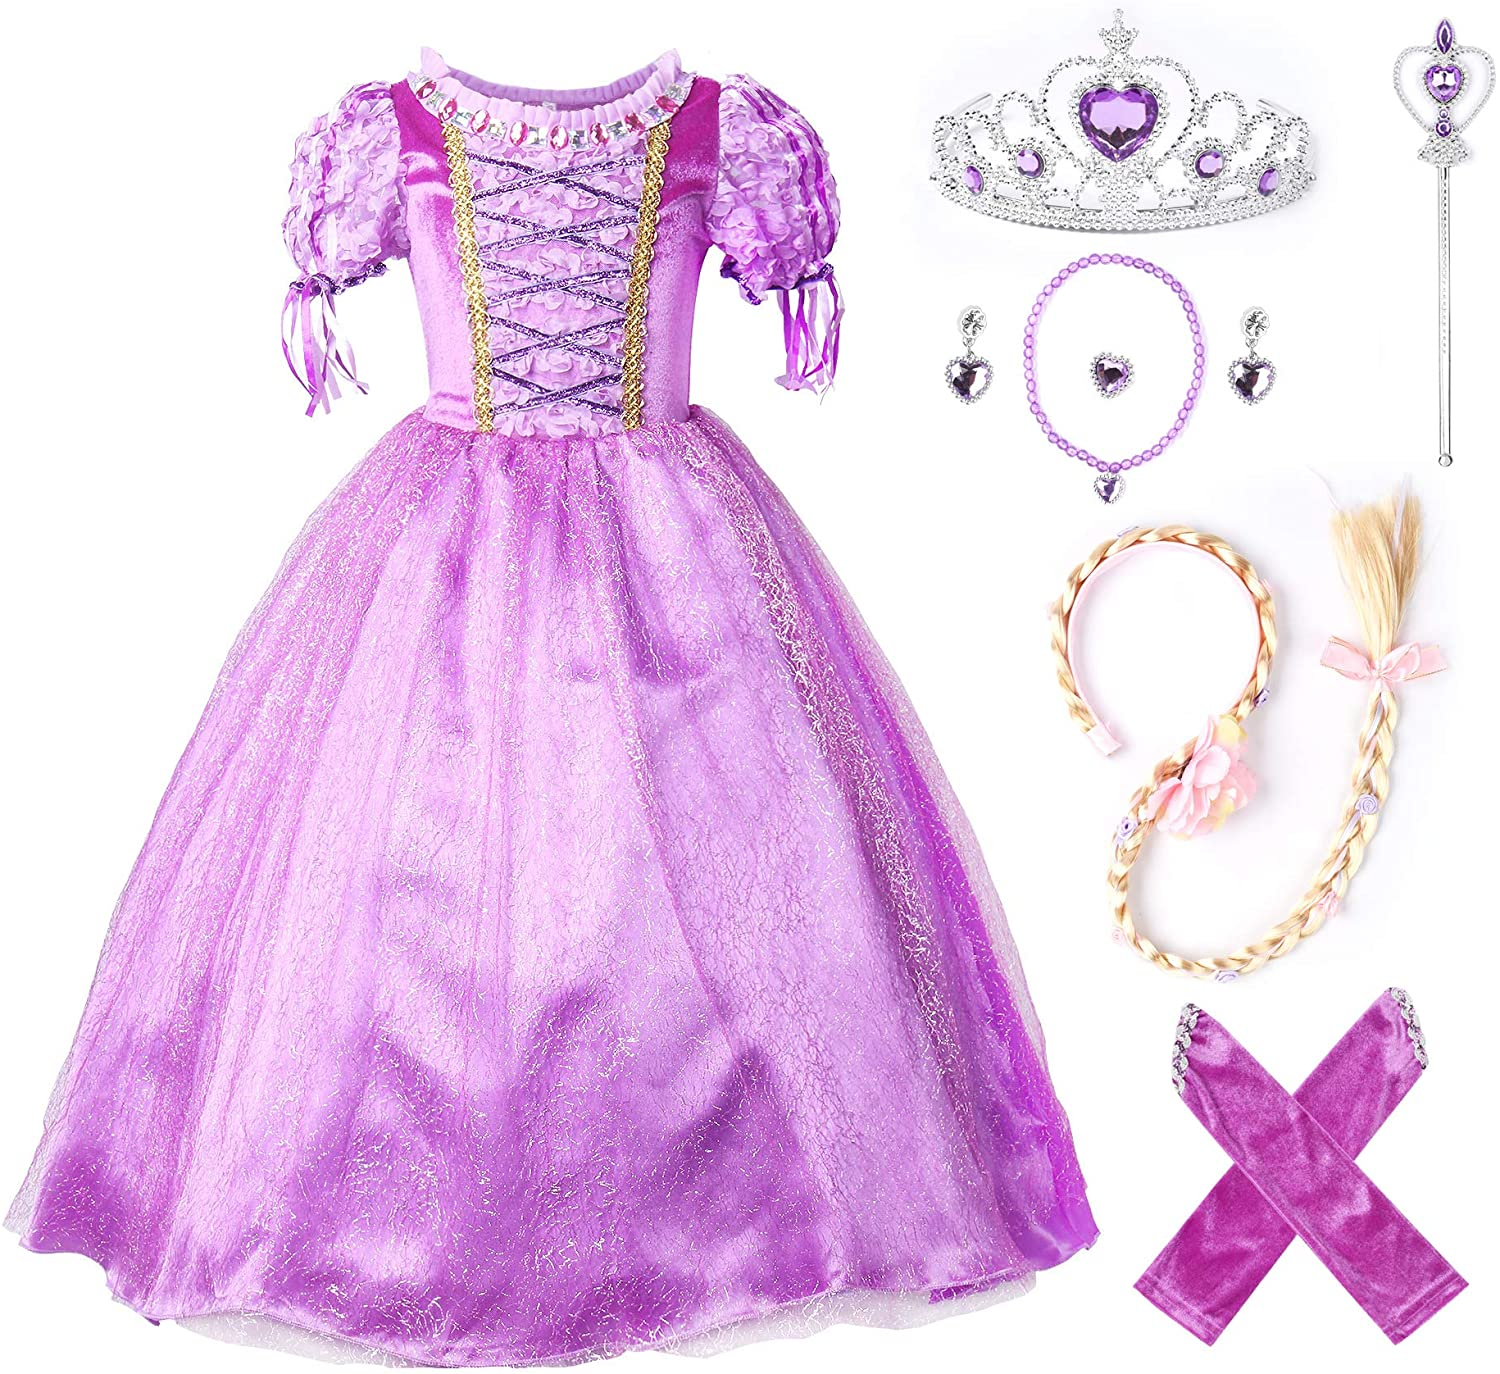 JerrisApparel Flower Girls New sales Dress Super beauty product restock quality top! Costume Princess Party